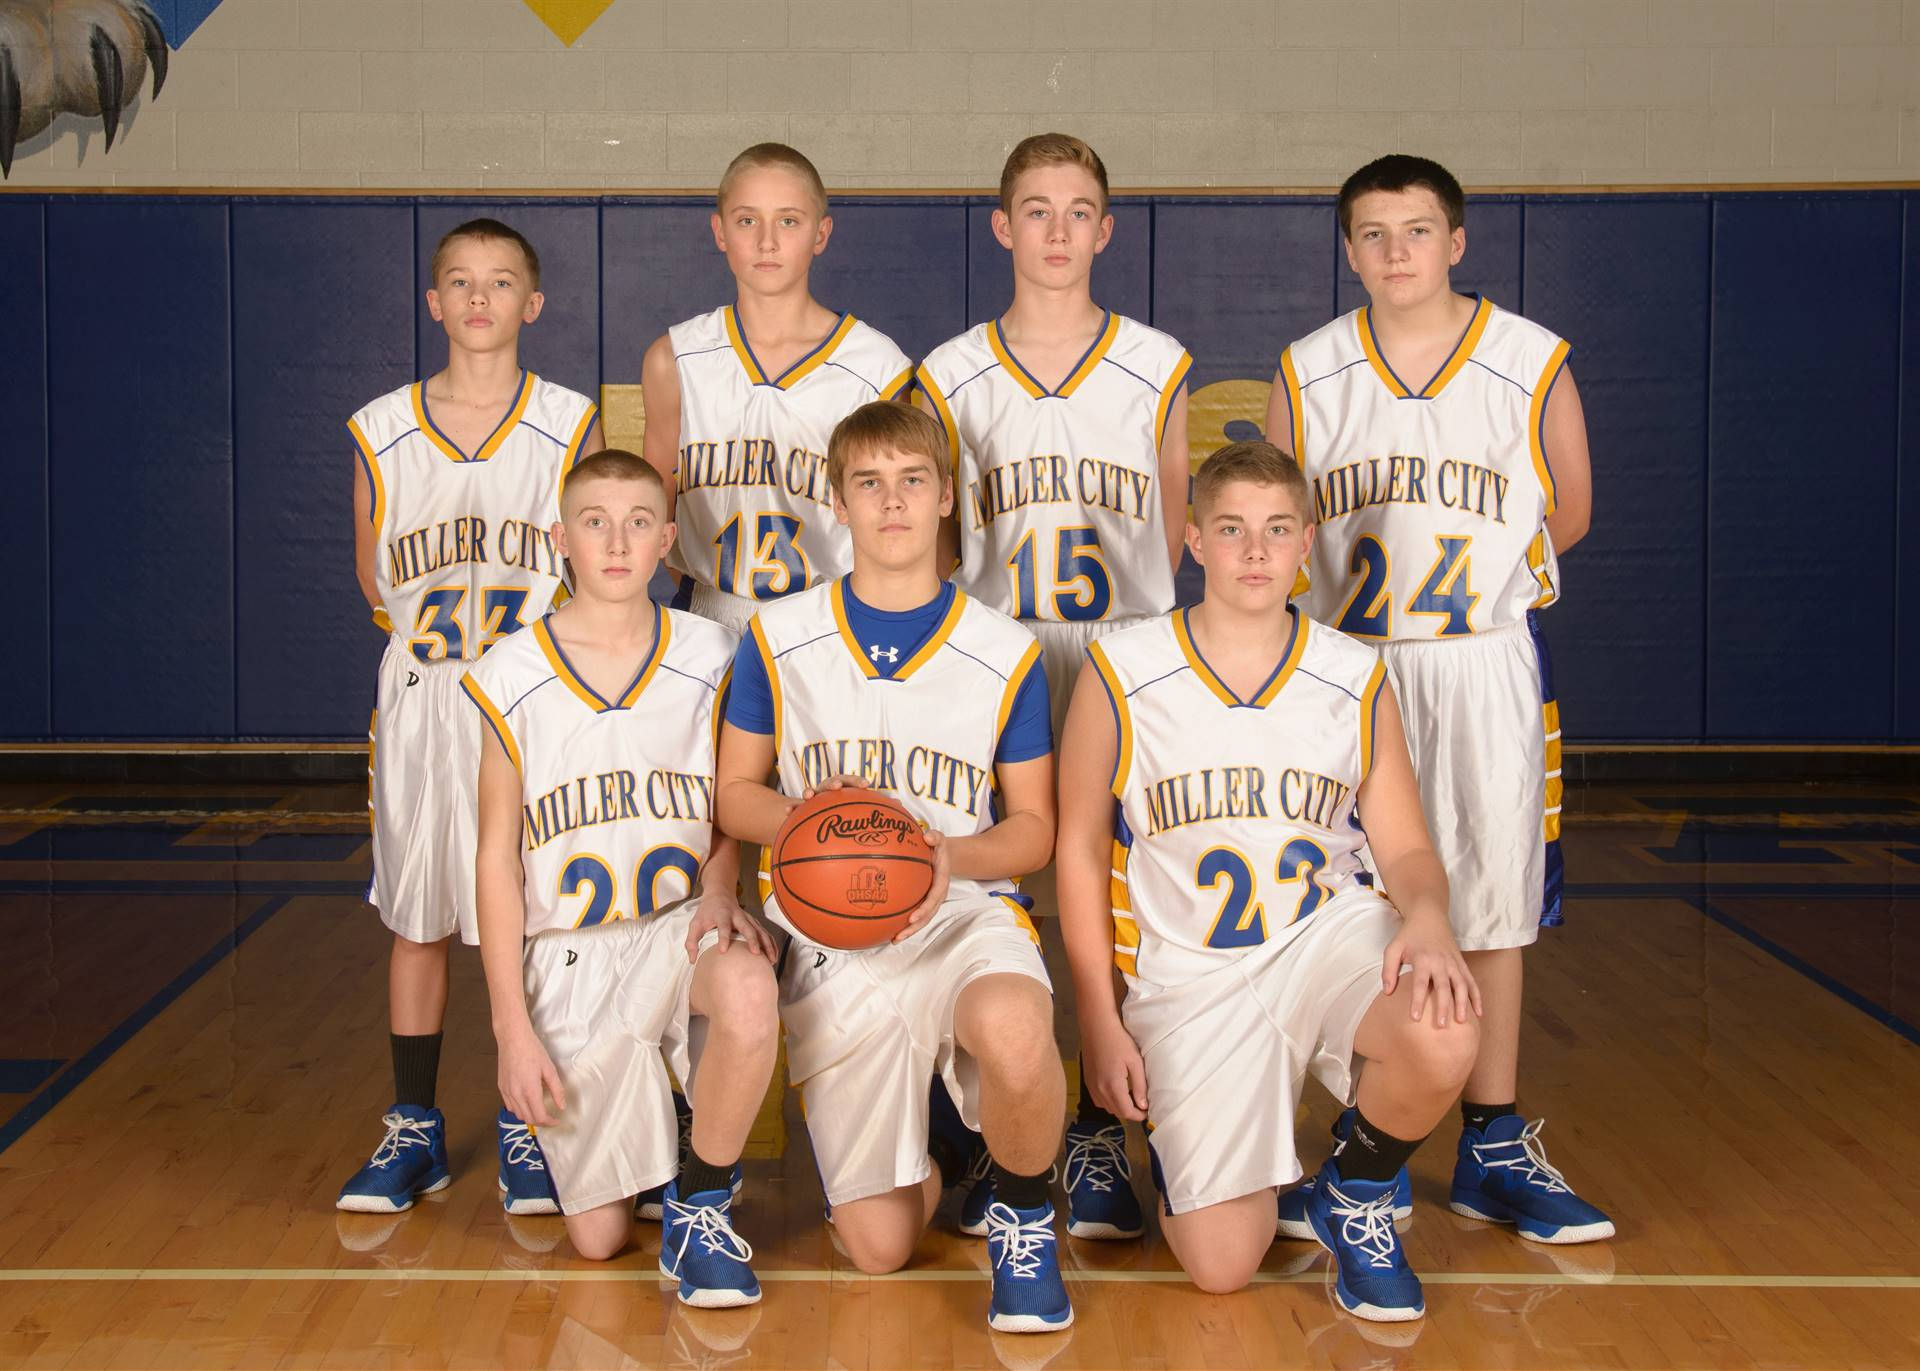 8th Grade Boys Basketball Team Photo